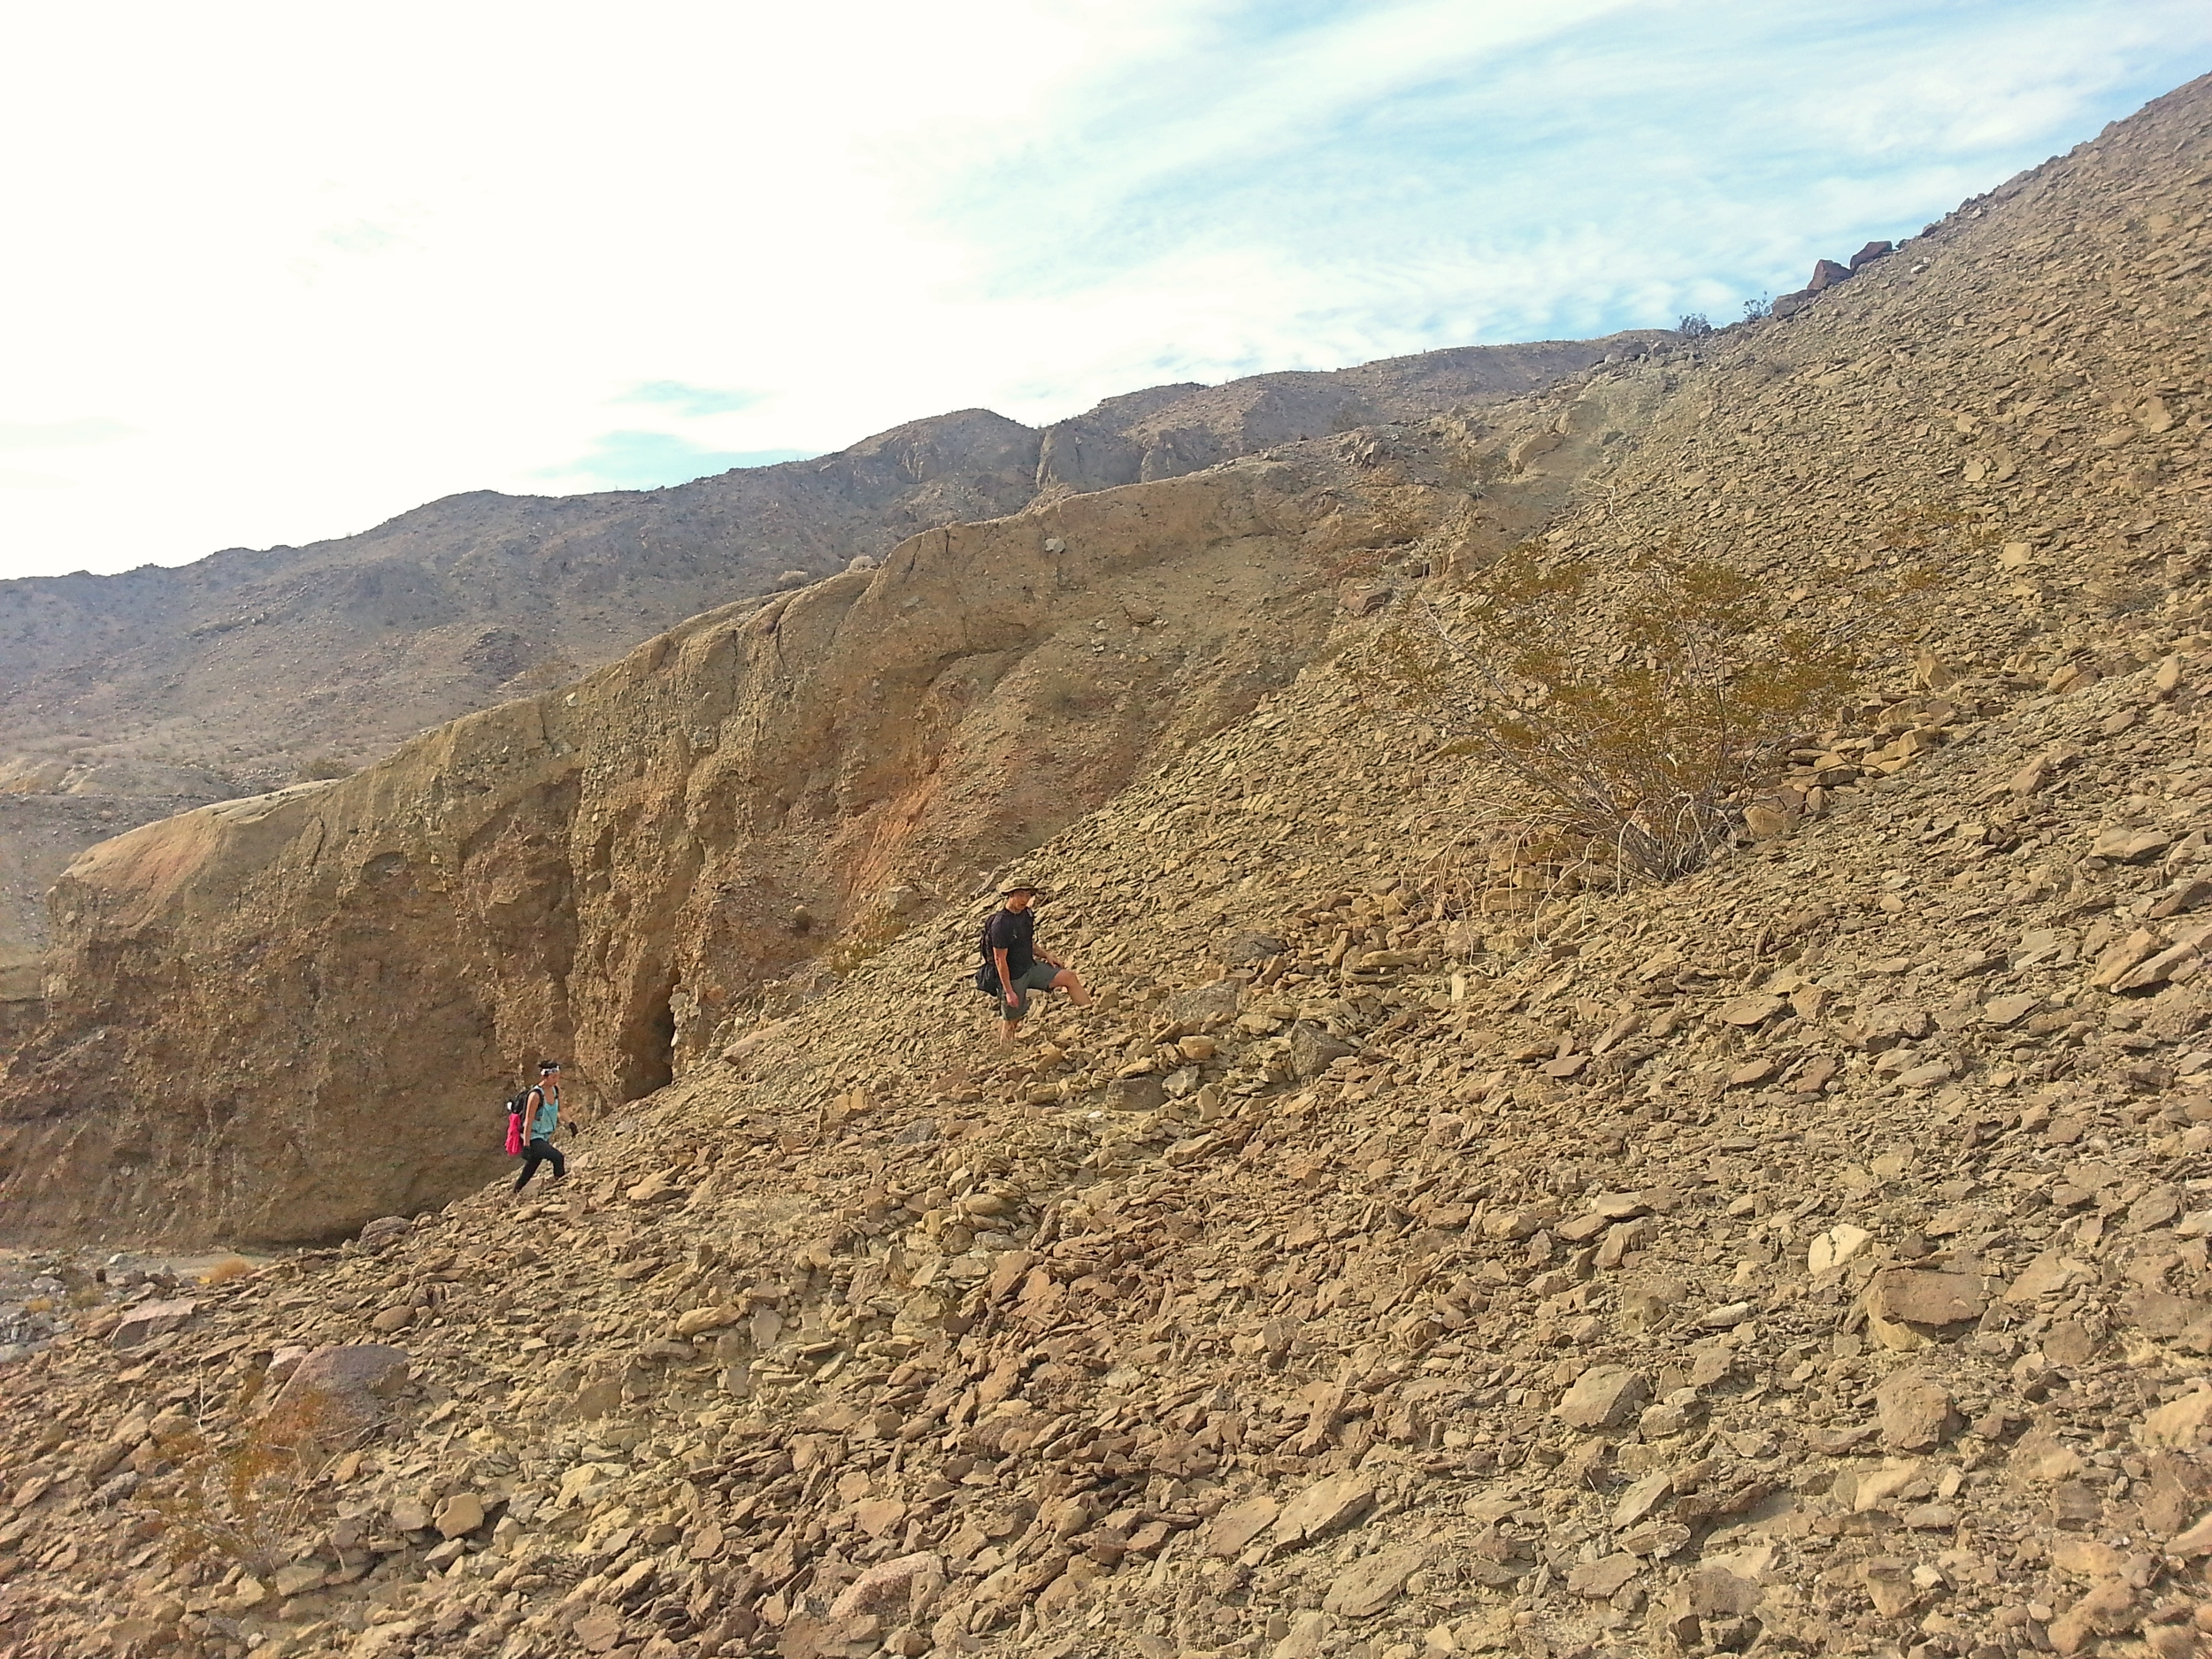 Steep and unstable climbing